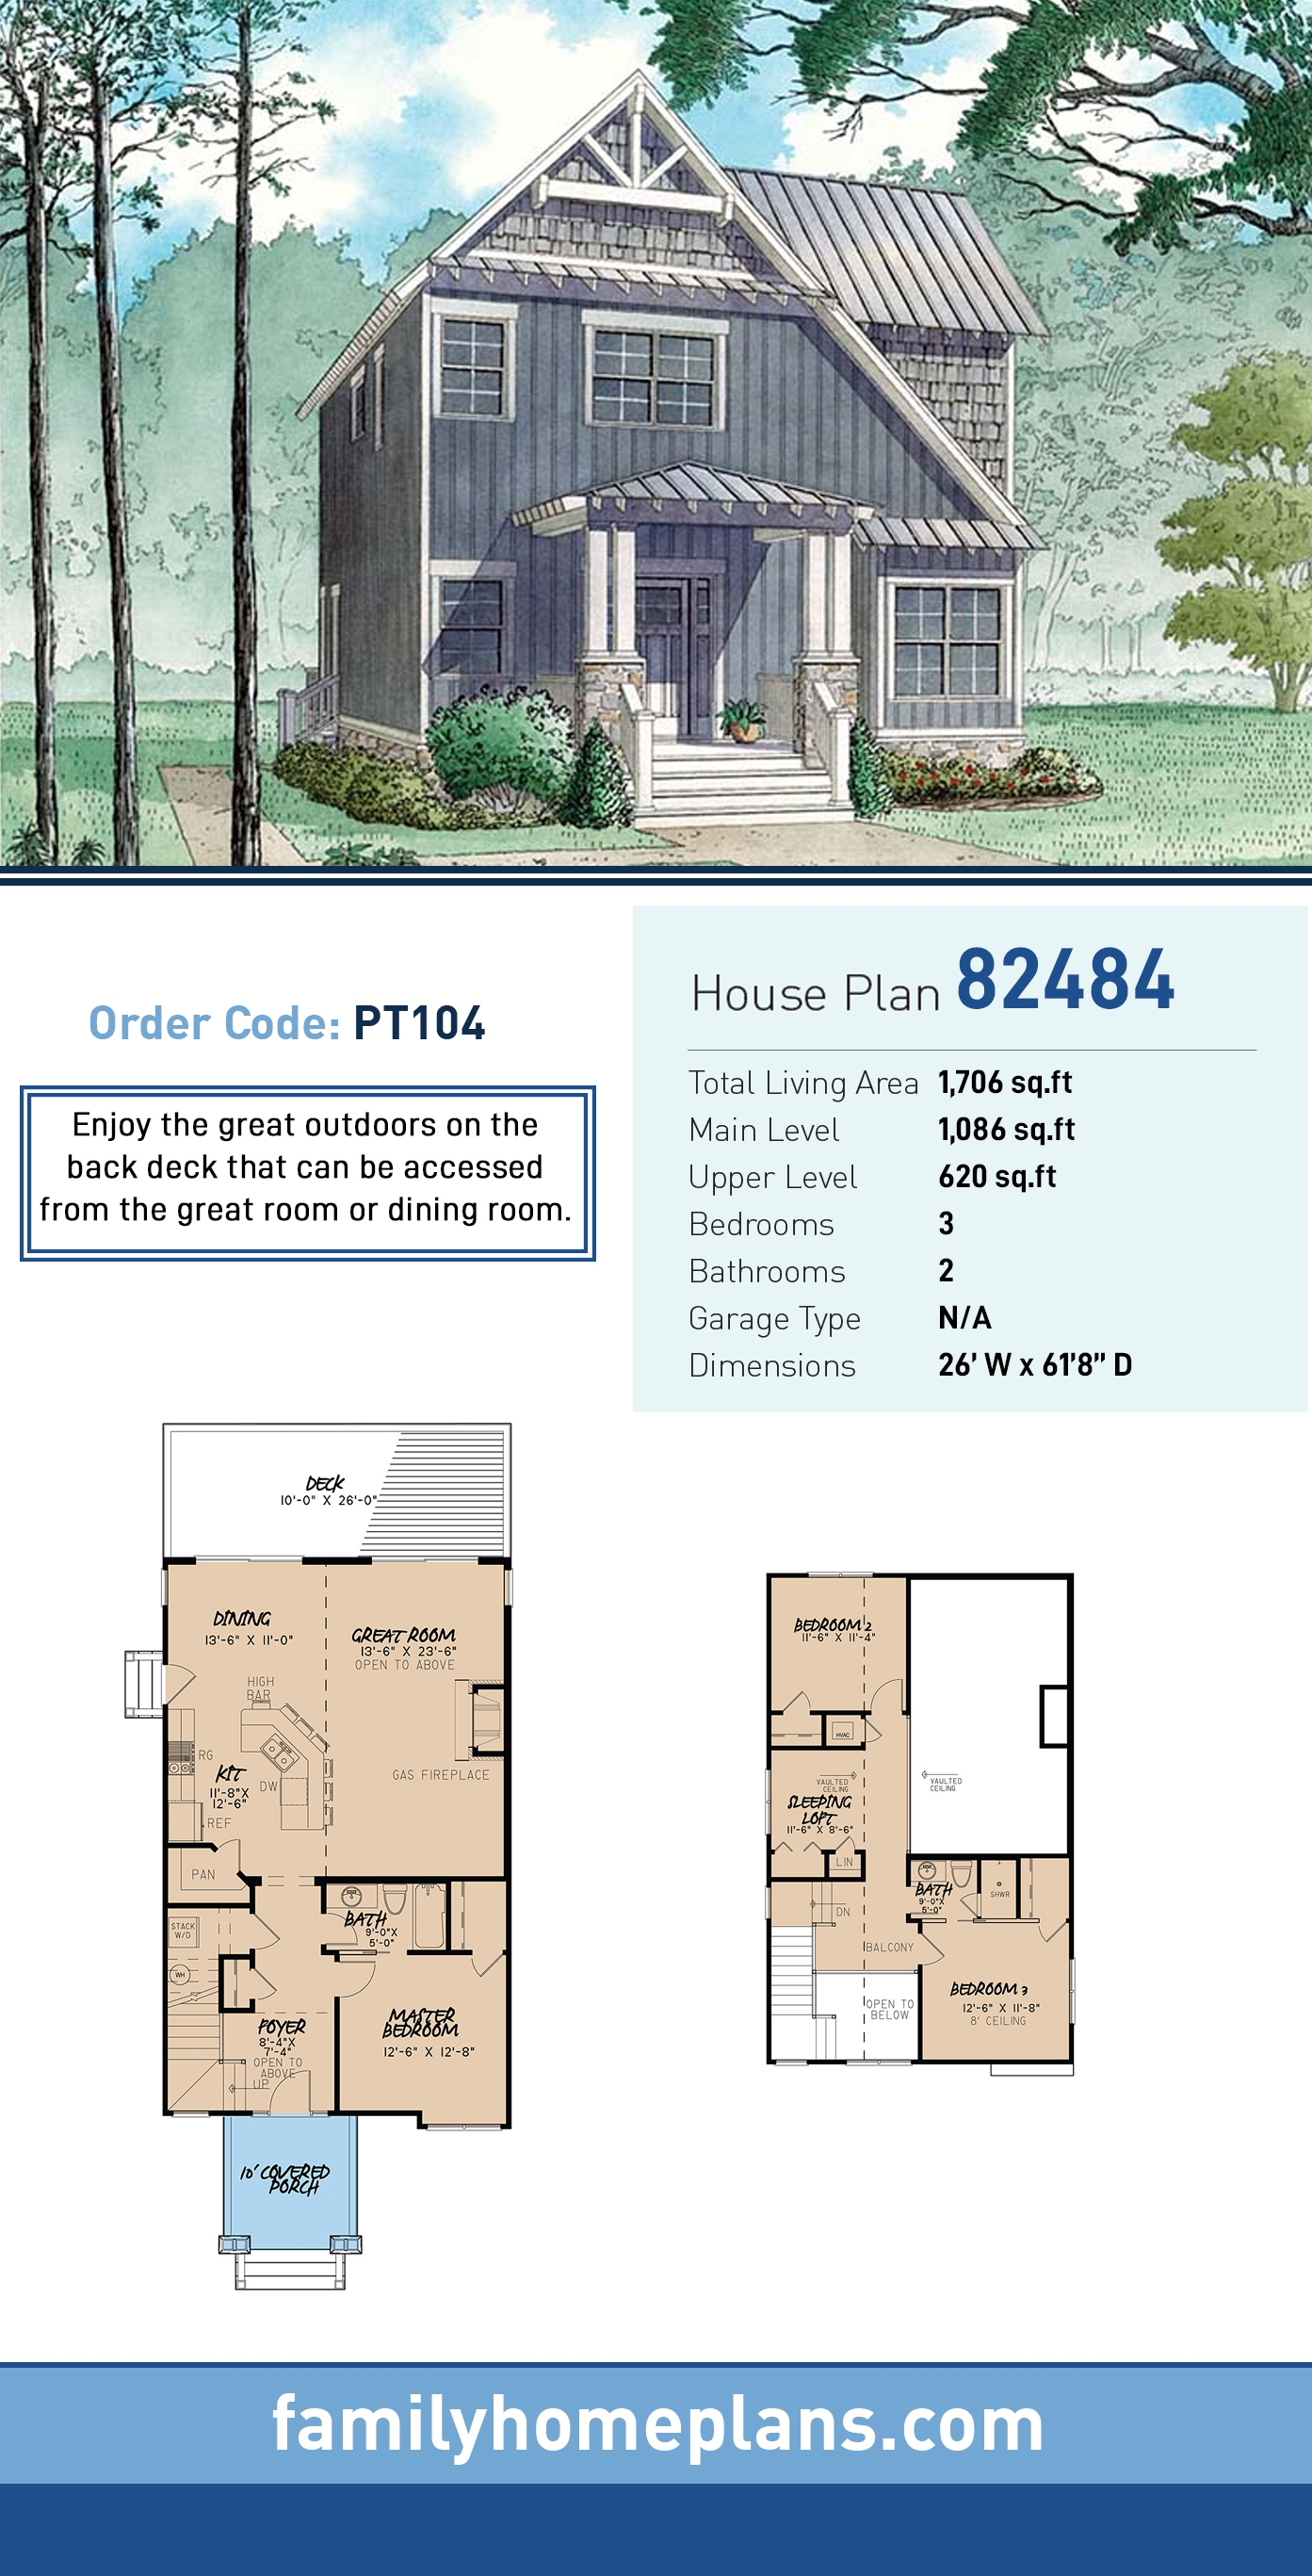 Contemporary, Cottage, Country, Craftsman, Saltbox, Southern House Plan 82484 with 3 Beds, 2 Baths